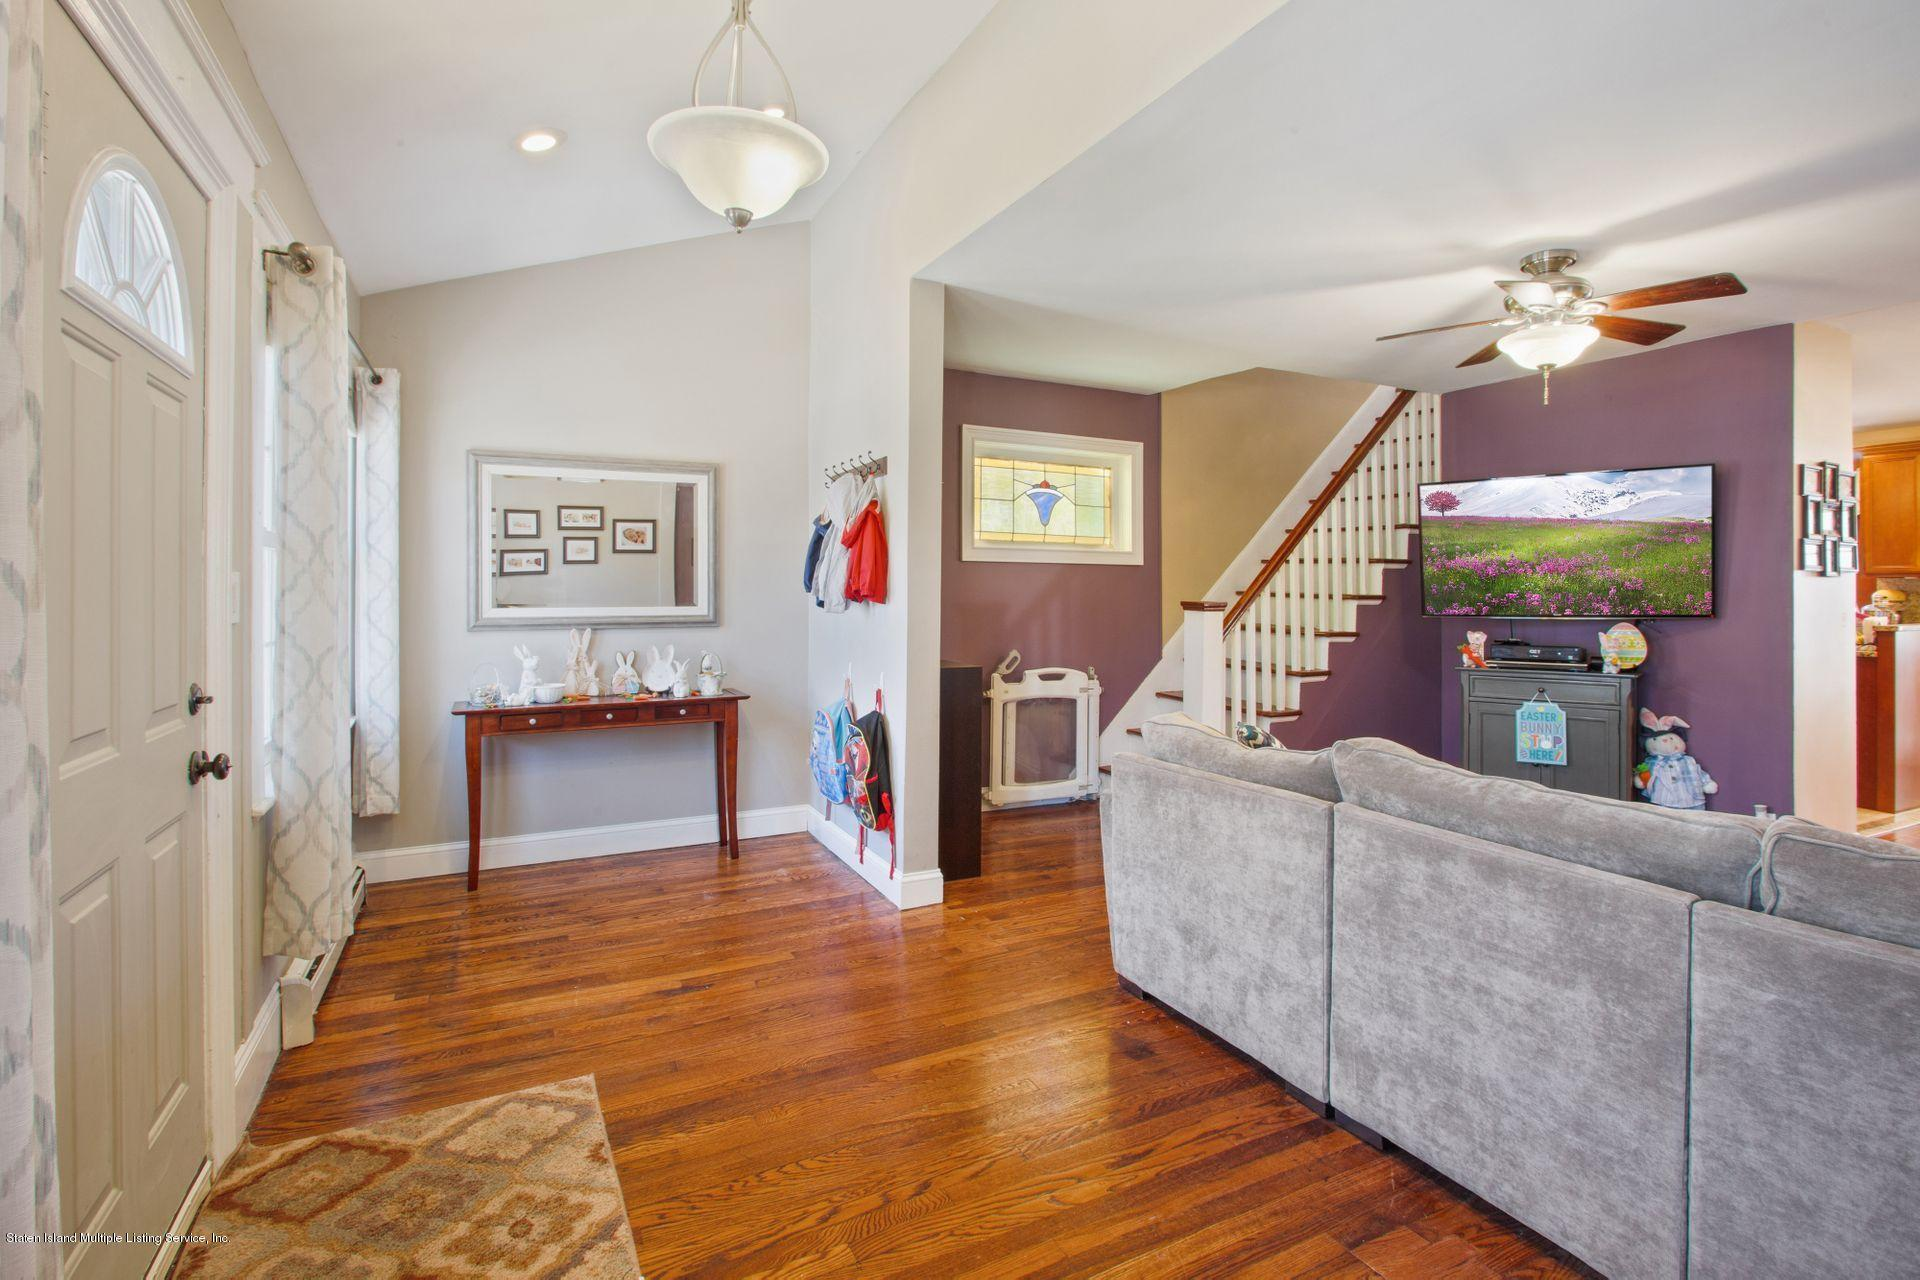 Single Family - Detached 252 Waters Avenue  Staten Island, NY 10314, MLS-1128050-5